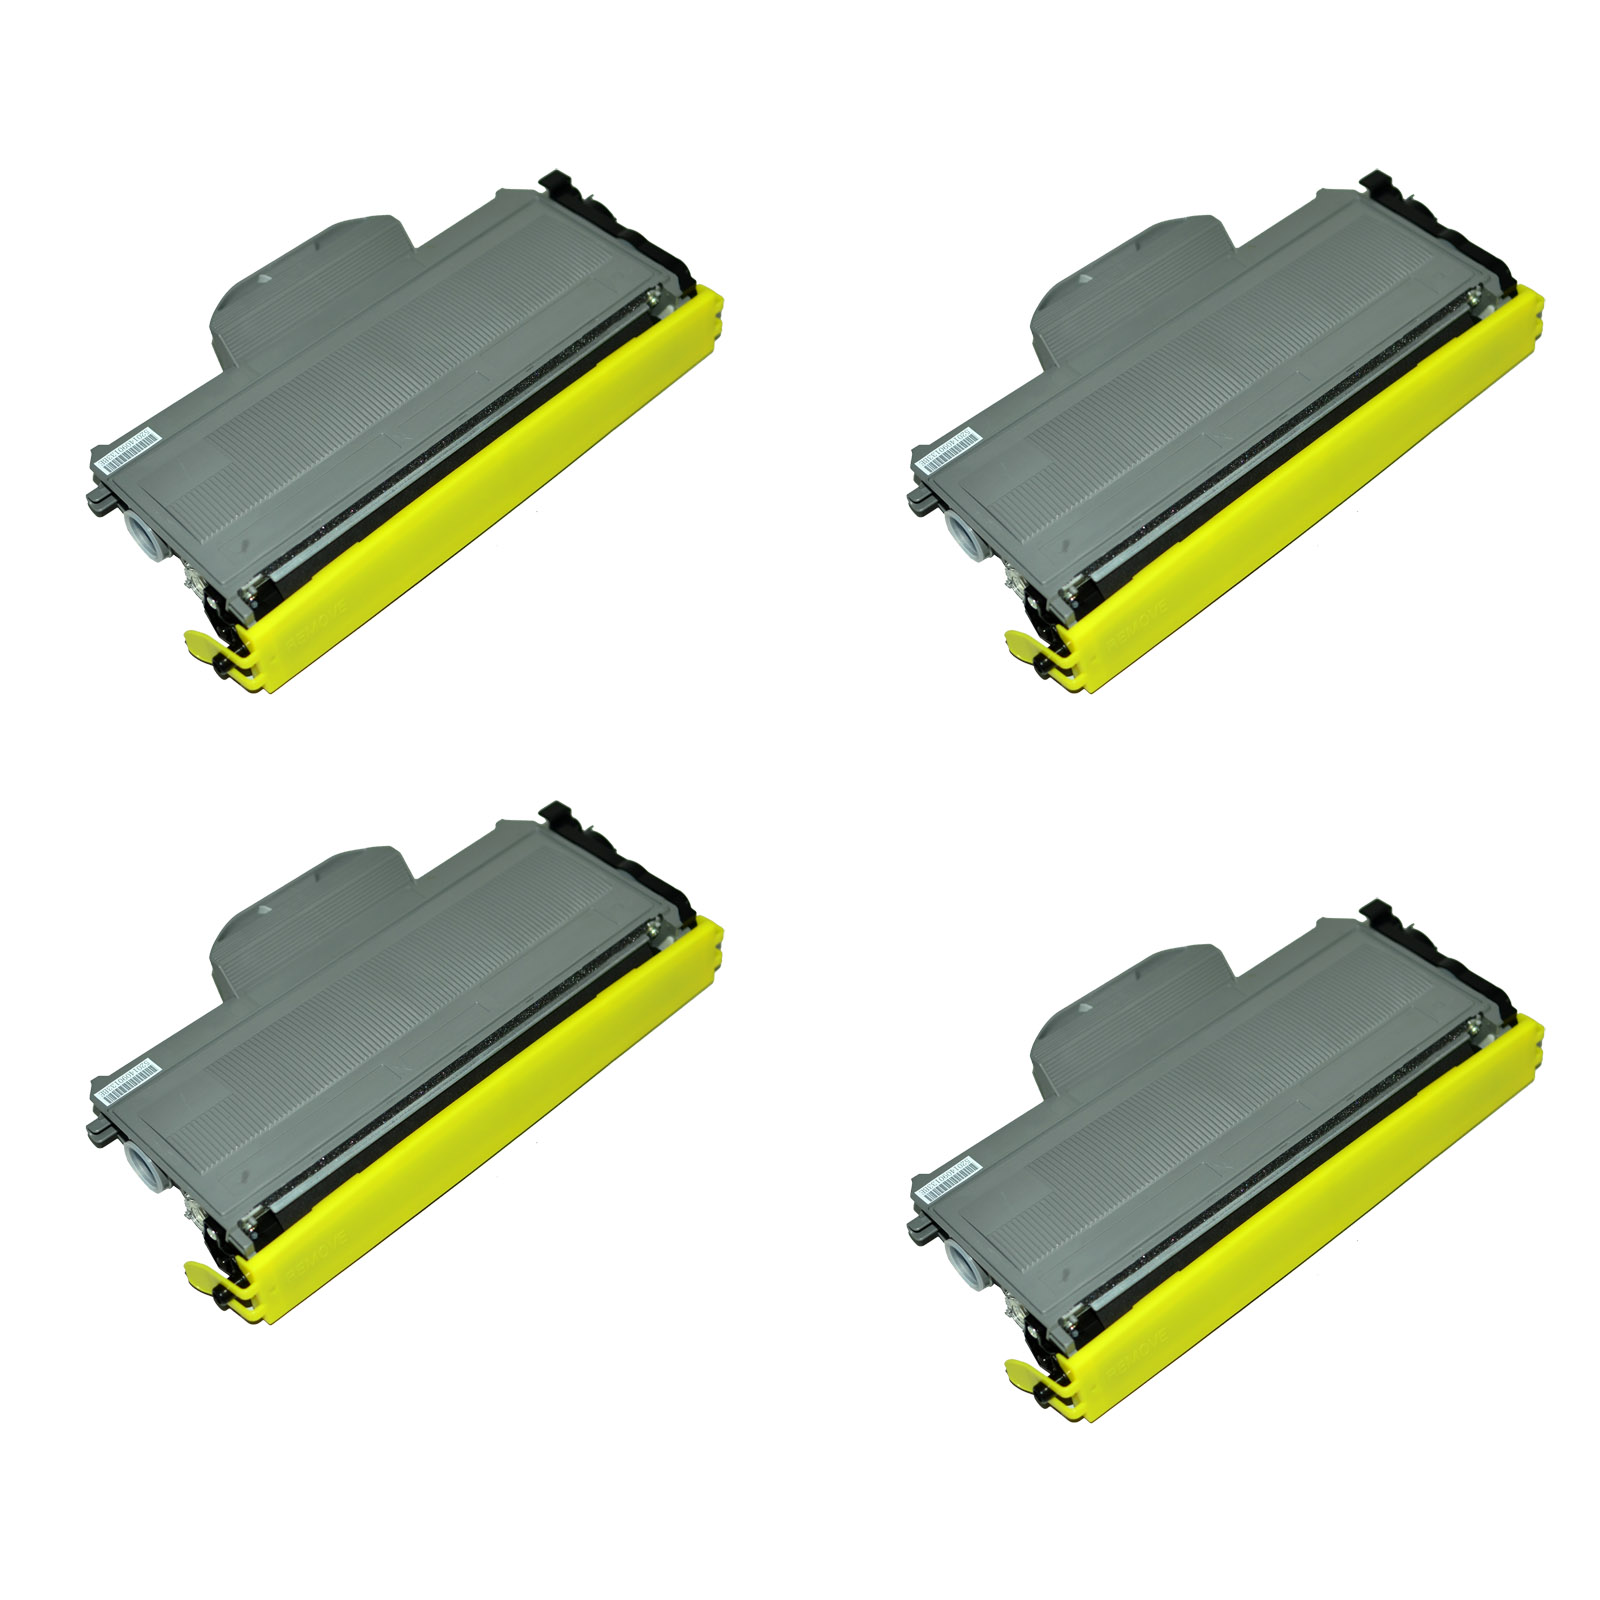 4PK Compatible 3X TN360 Toner DR360 Drum for Brother MFC-7840 MFC-7340